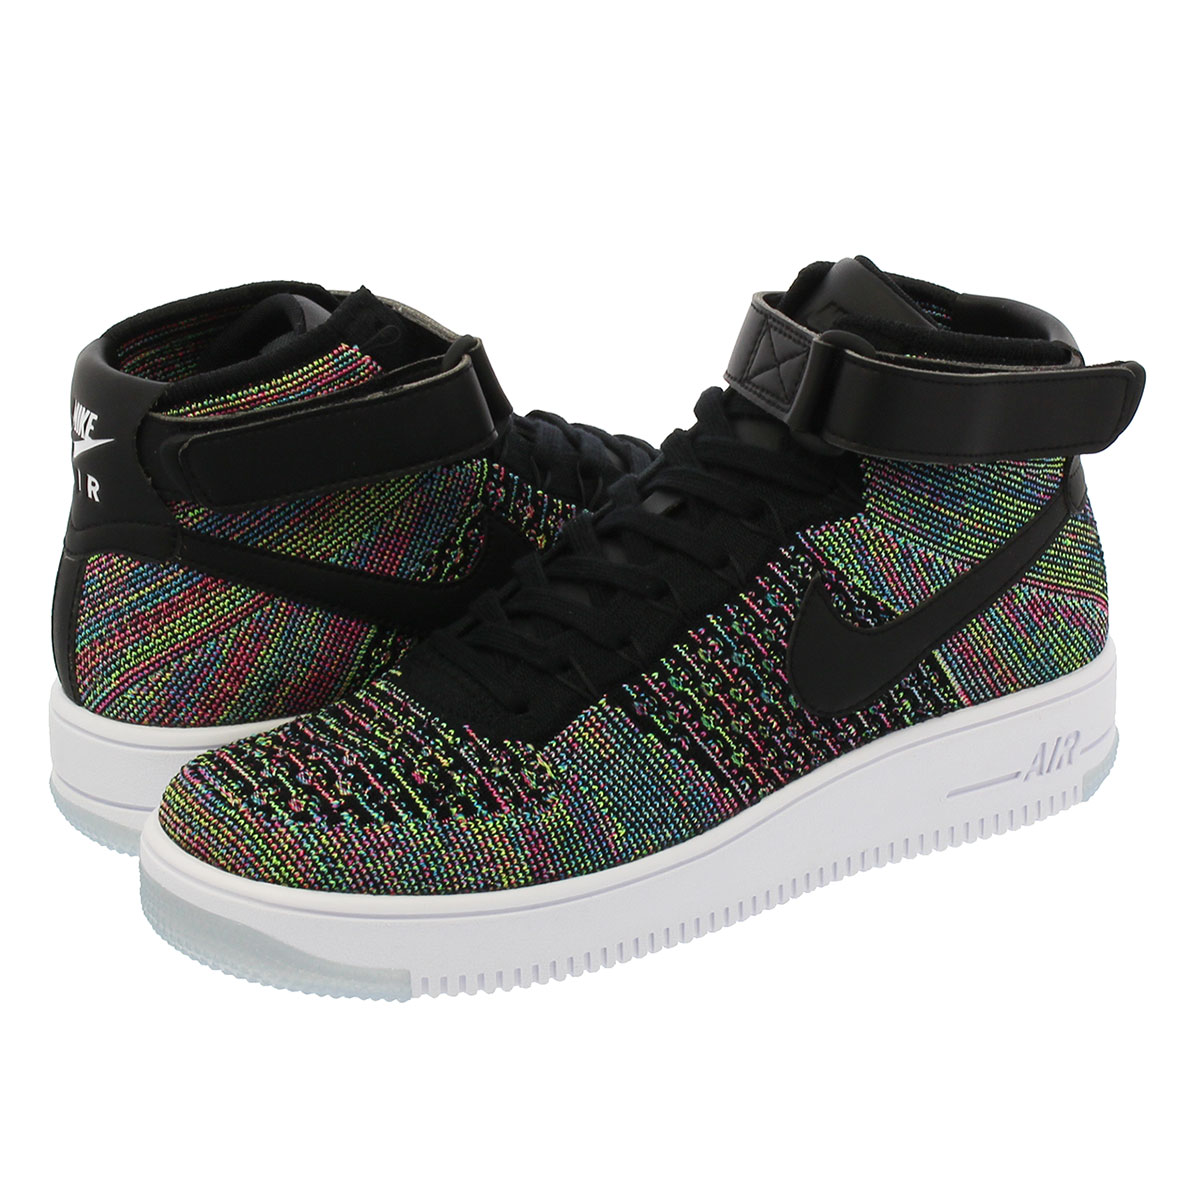 8a1ecd491e666b ... pink blast black white 76617 0e1a5 shopping nike air force 1 ultra  flyknit mid nike air force 1 ultra fly knit mid ...